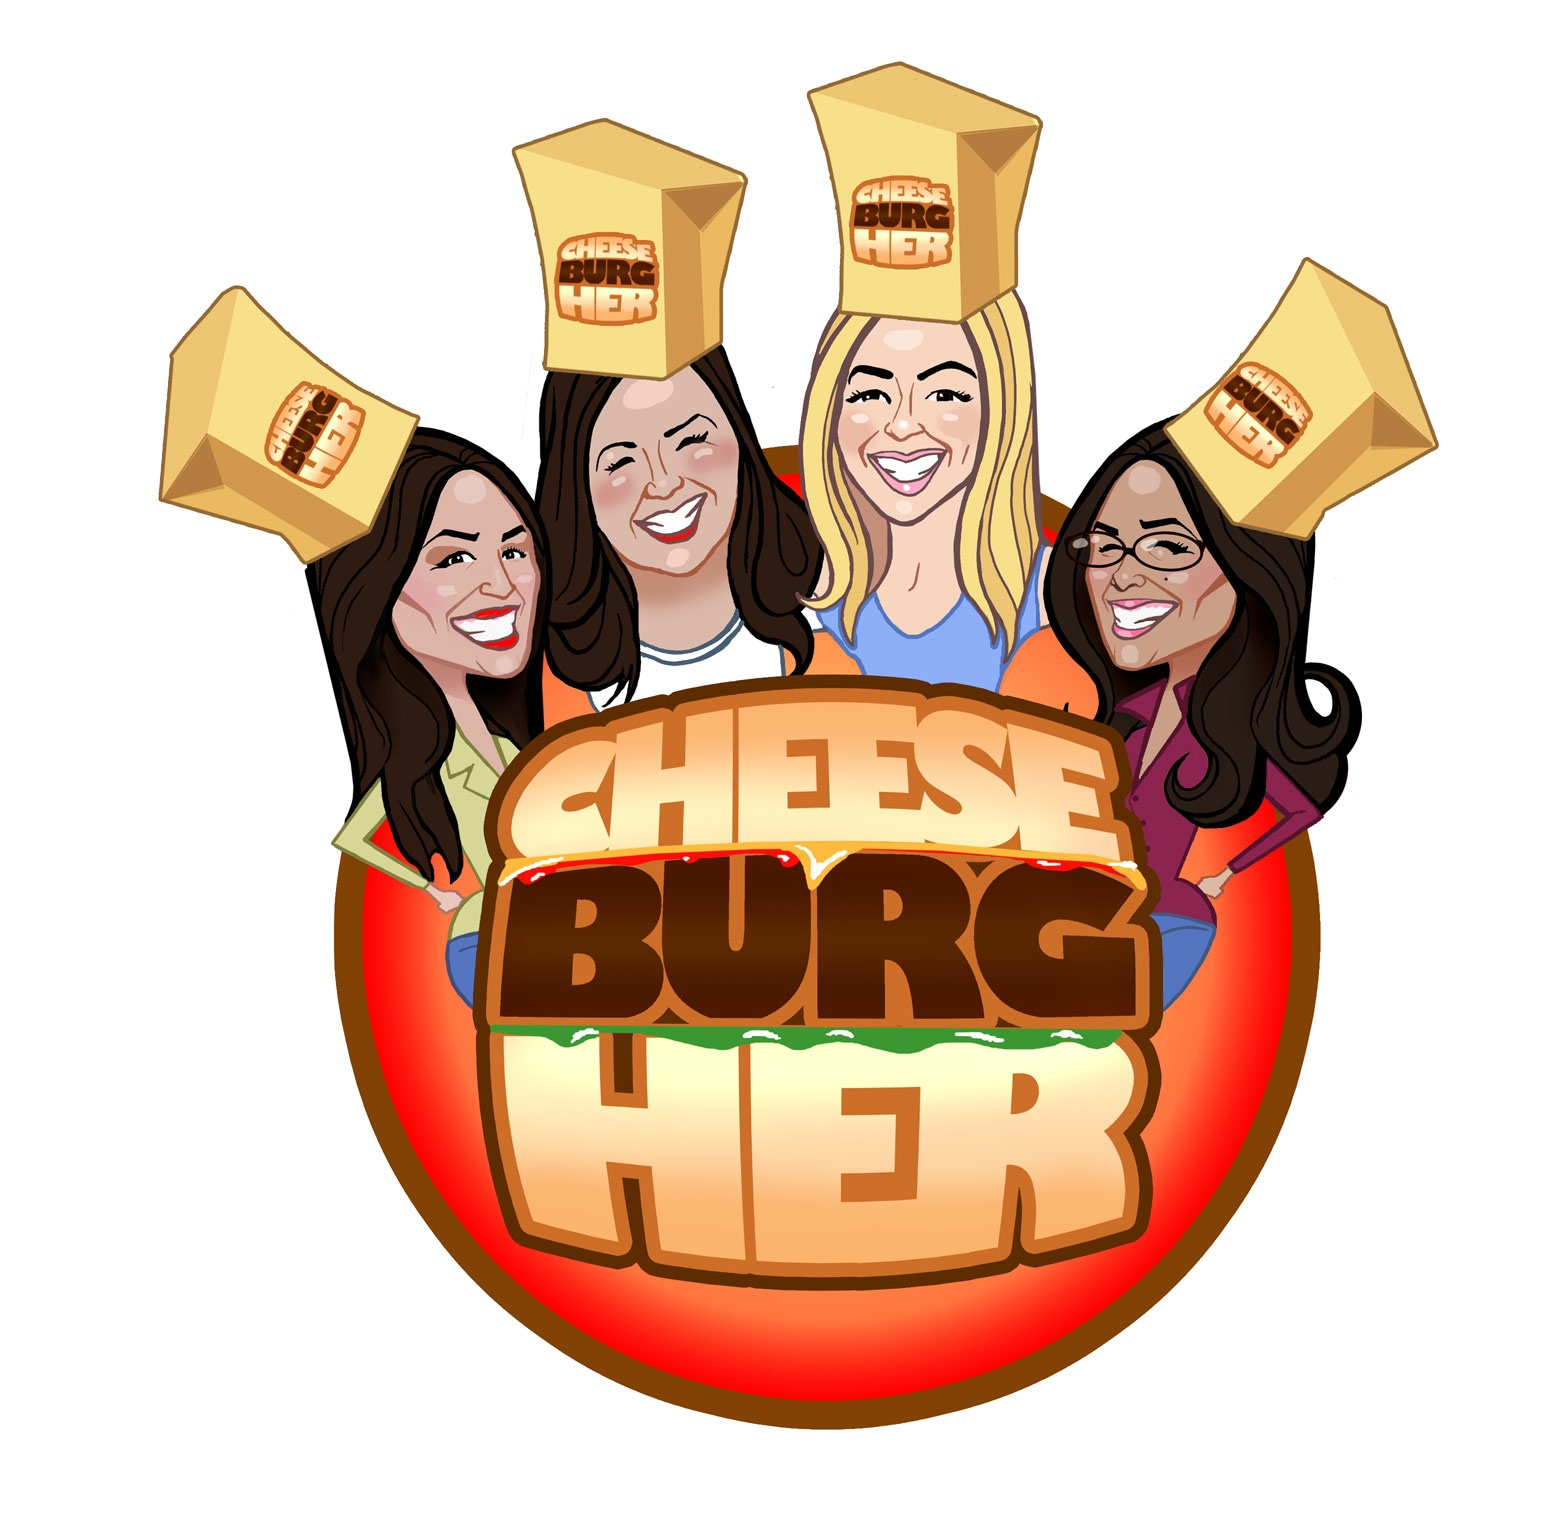 CheeseburgHer Party People… say what?